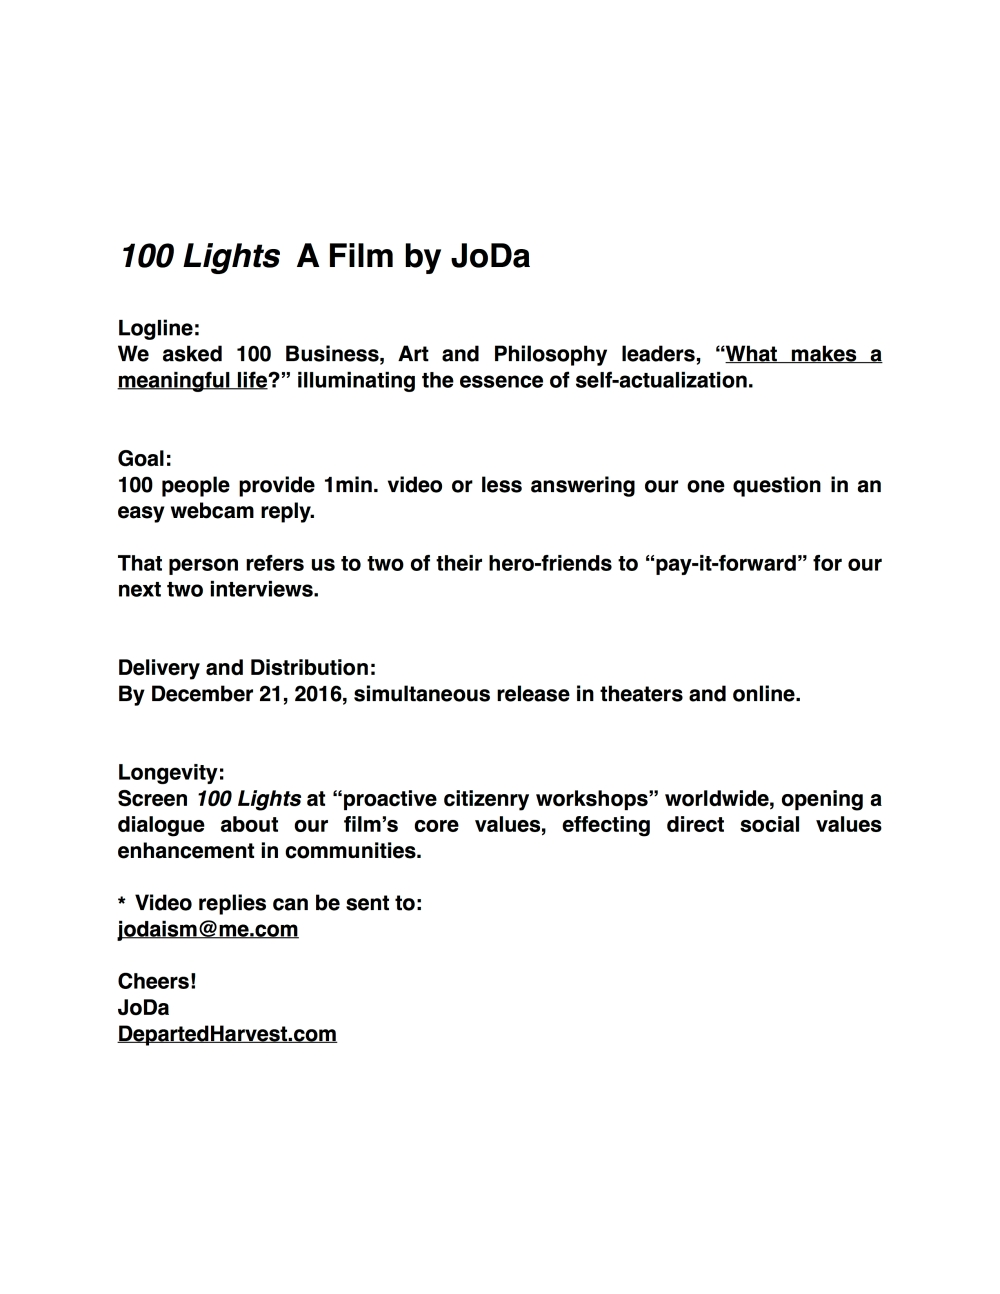 100 Lights by JoDa